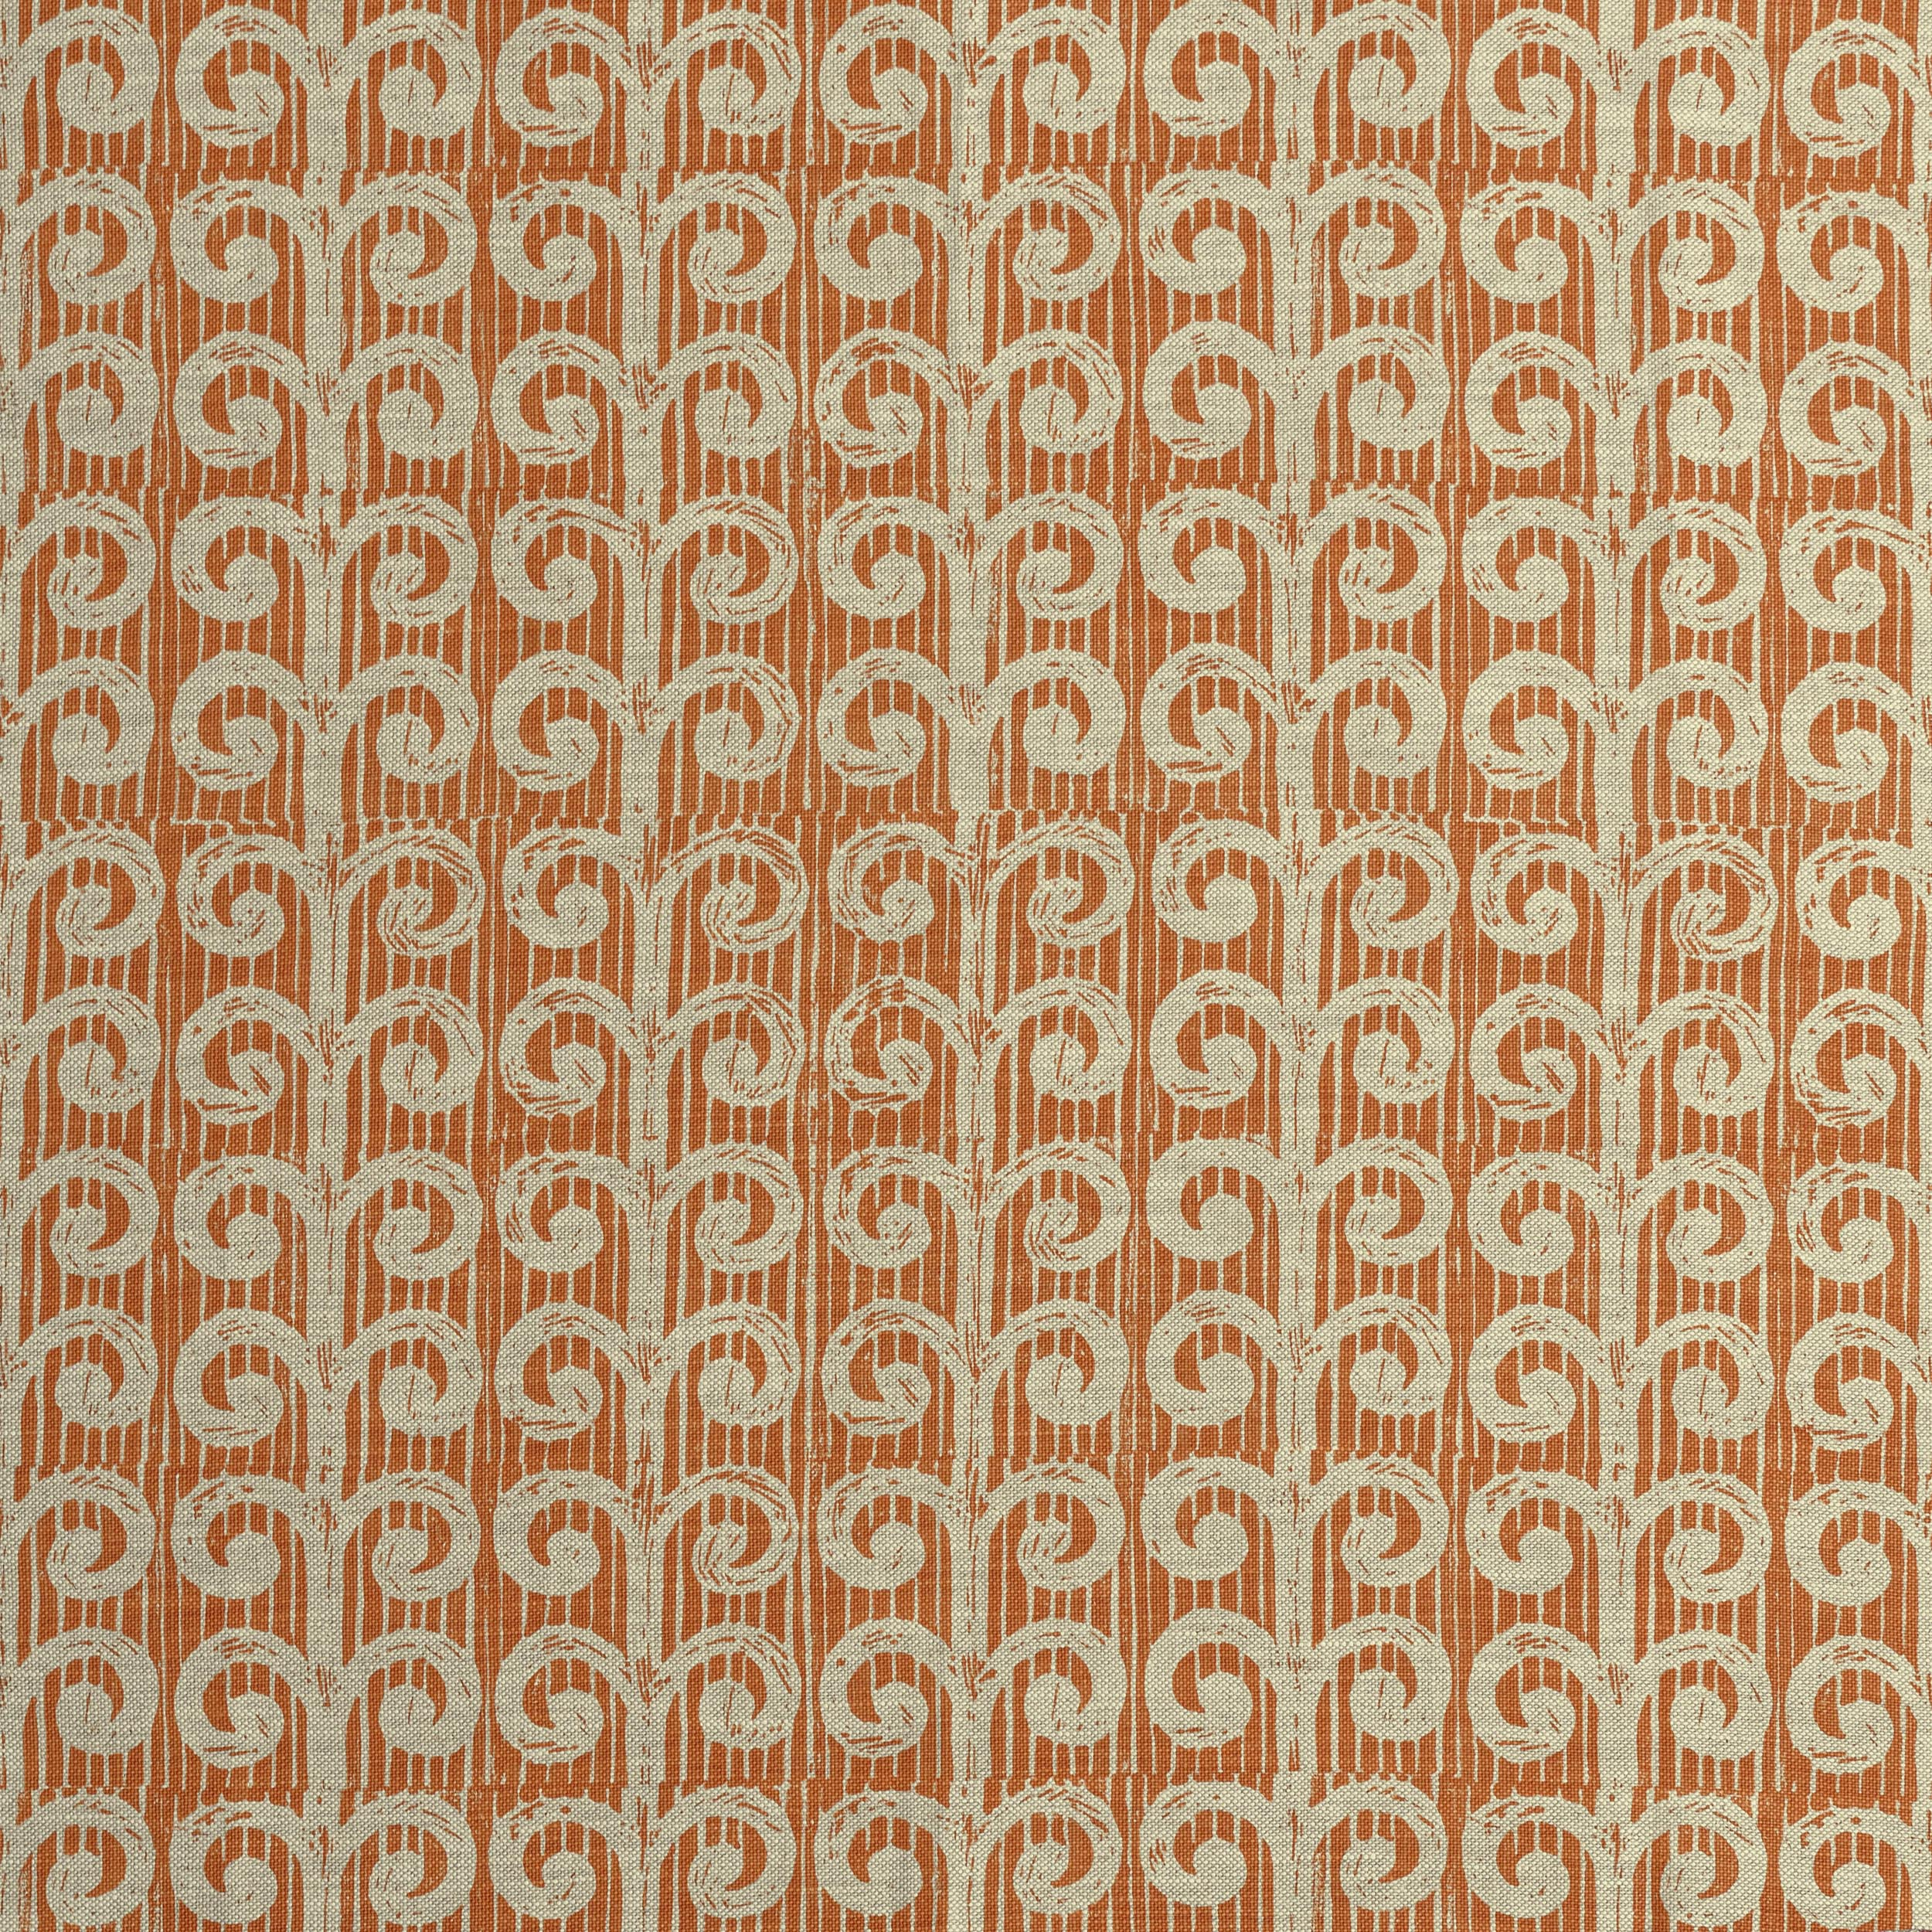 <p><strong>FERN</strong>tangerine 6808-03<a href=/the-brooke-collection/tangerine-6808-03>More →</a></p>